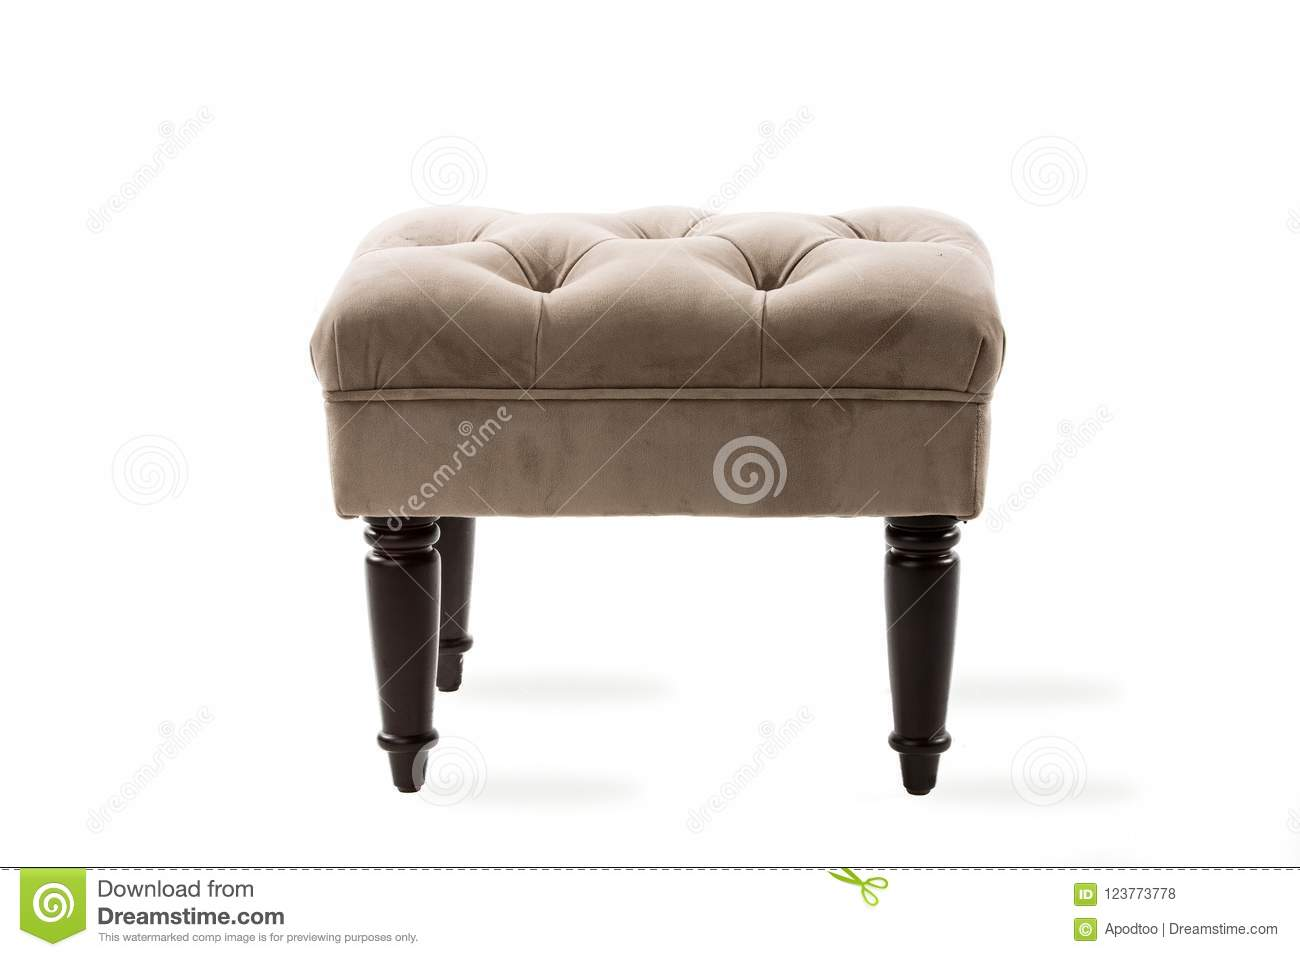 https www dreamstime com tufted taupe tan overstuffed ottoman stool tan taupe colored tufted ottoman stool isolated white buttons vintage old image123773778